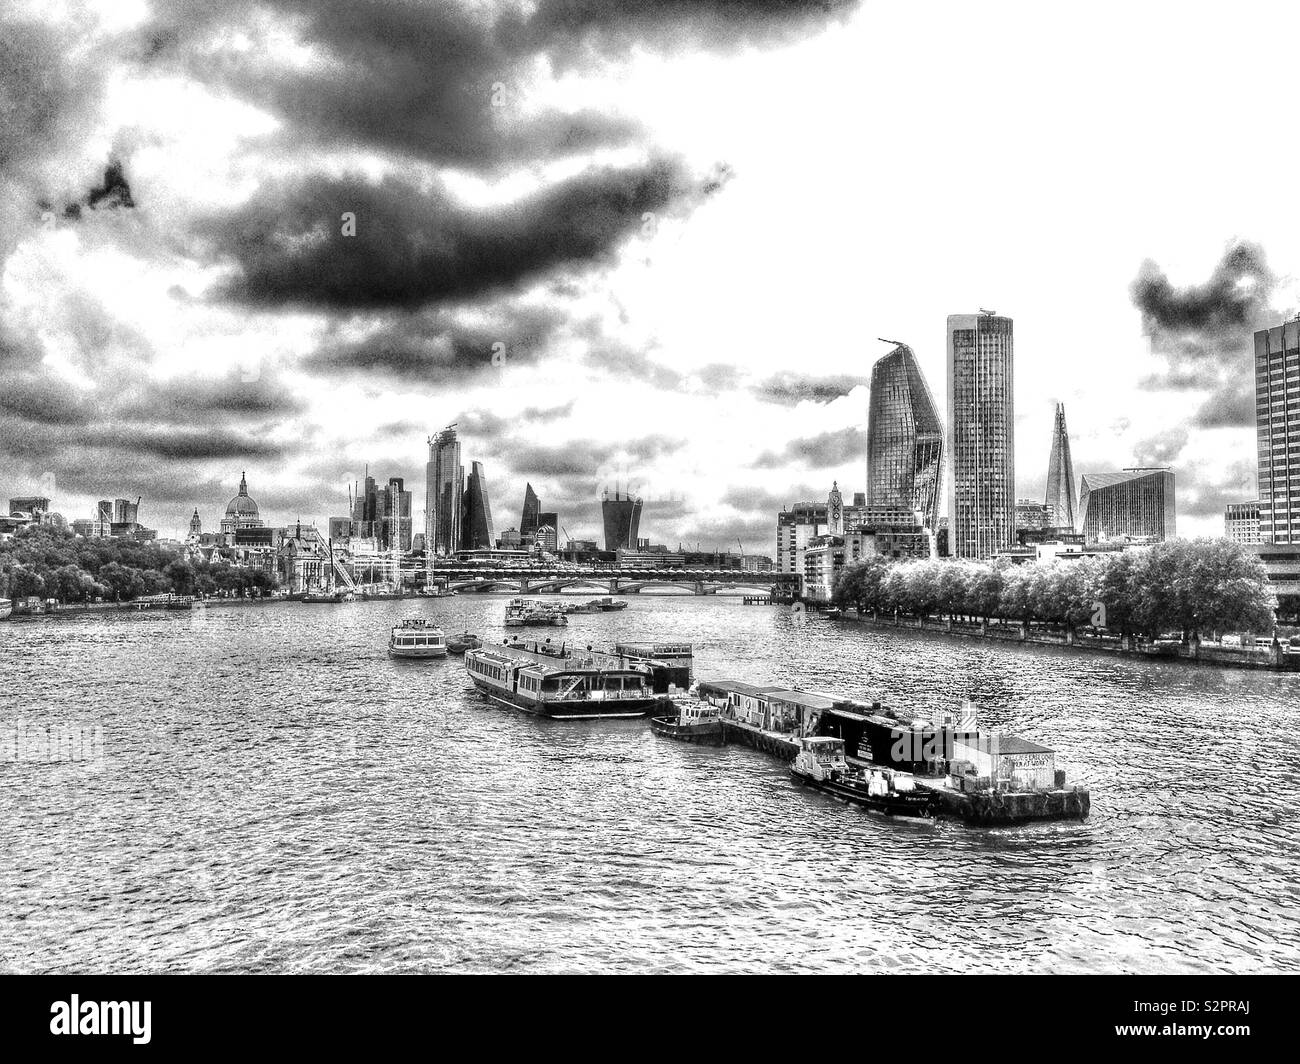 A view from Waterloo Bridge looking along the River Thames towards the City of London, England on an overcast day. - Stock Image